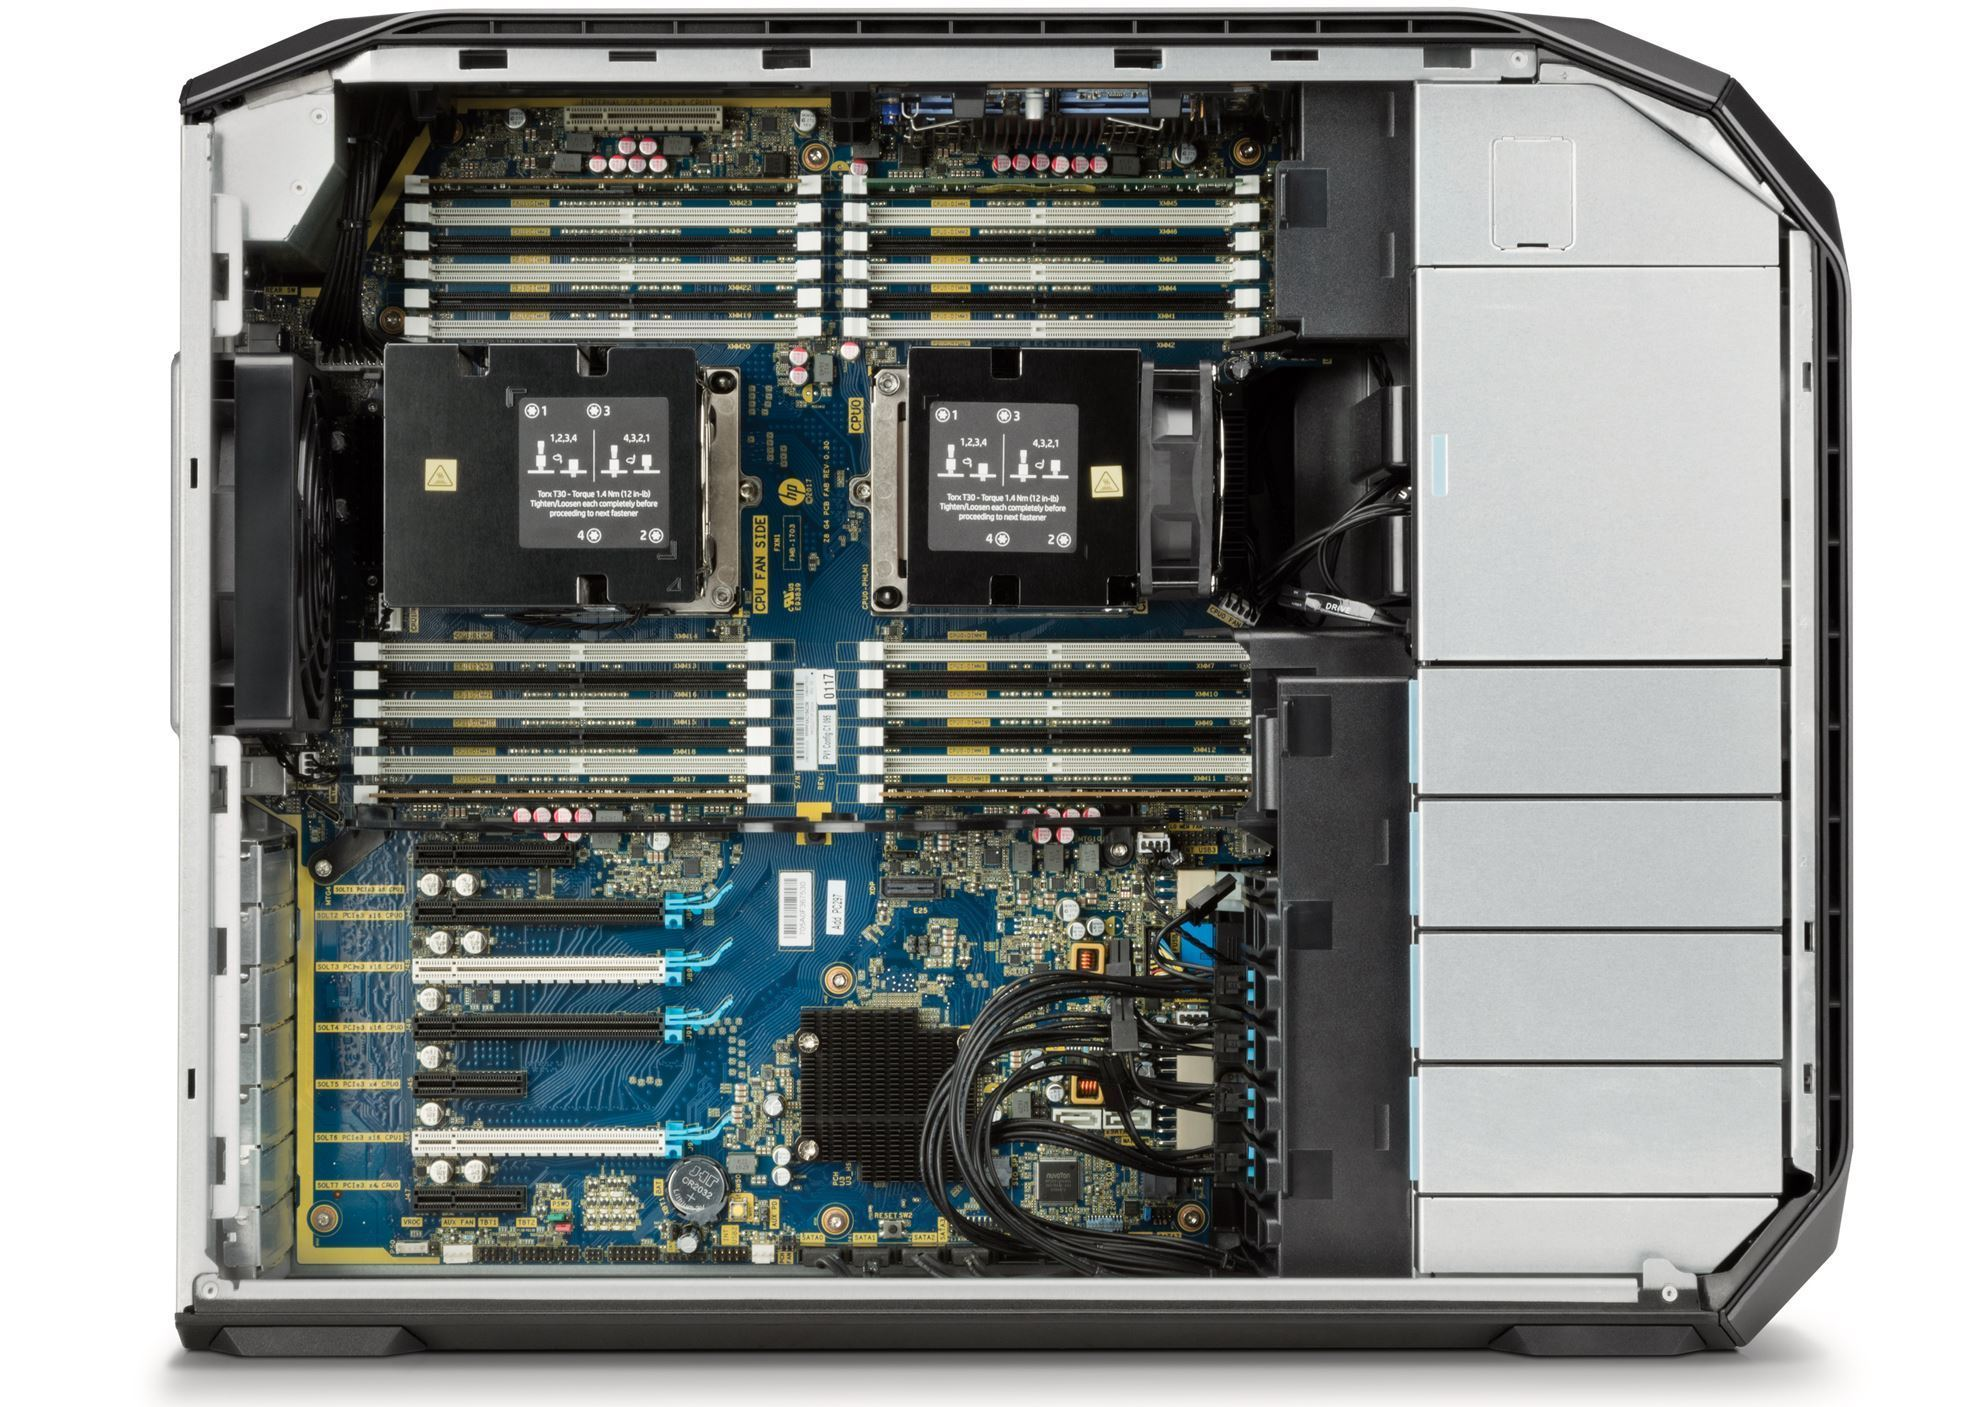 Picture of HP Z8 G4 Workstation Gold 6254